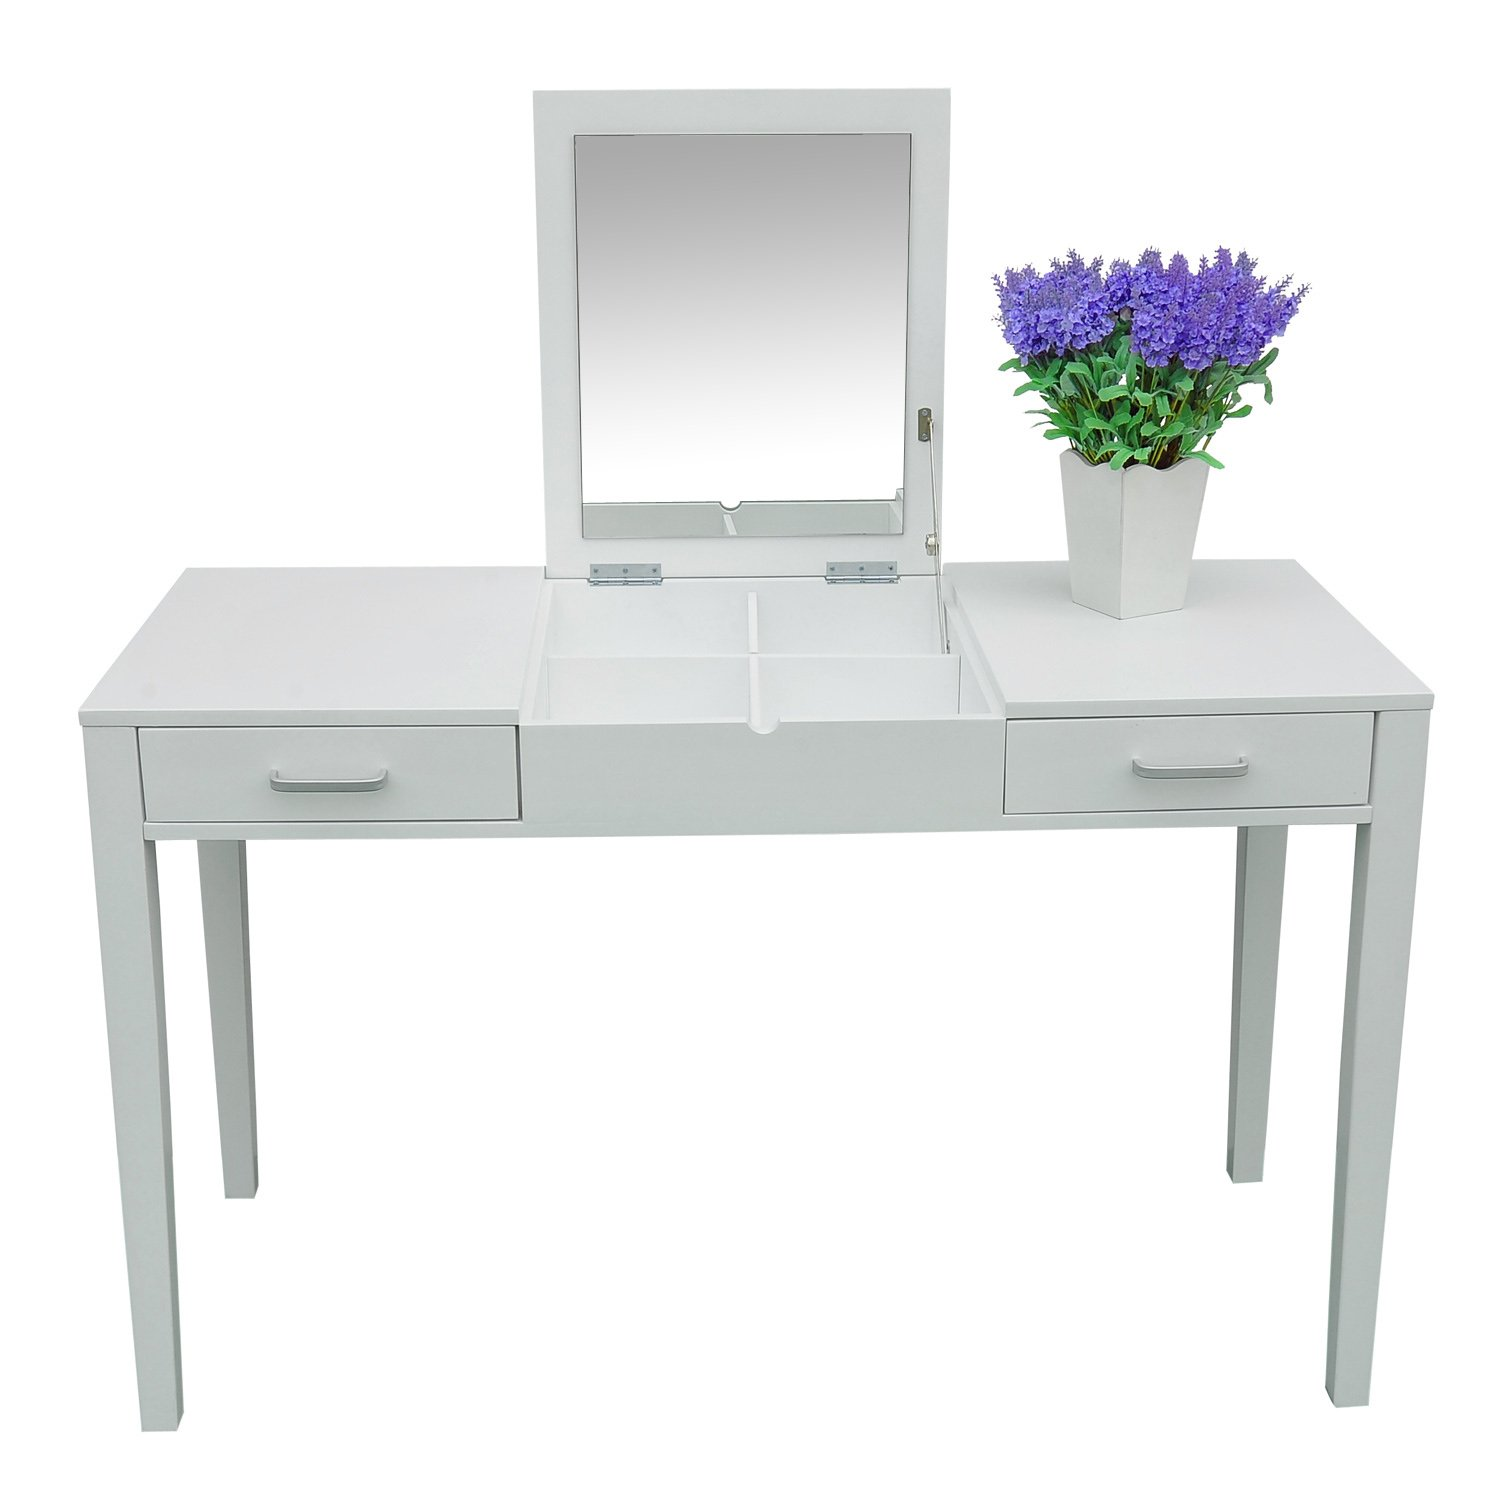 Makeup Table Furniture To Go Shaker Dressing Table Desk 3 Drawers White With